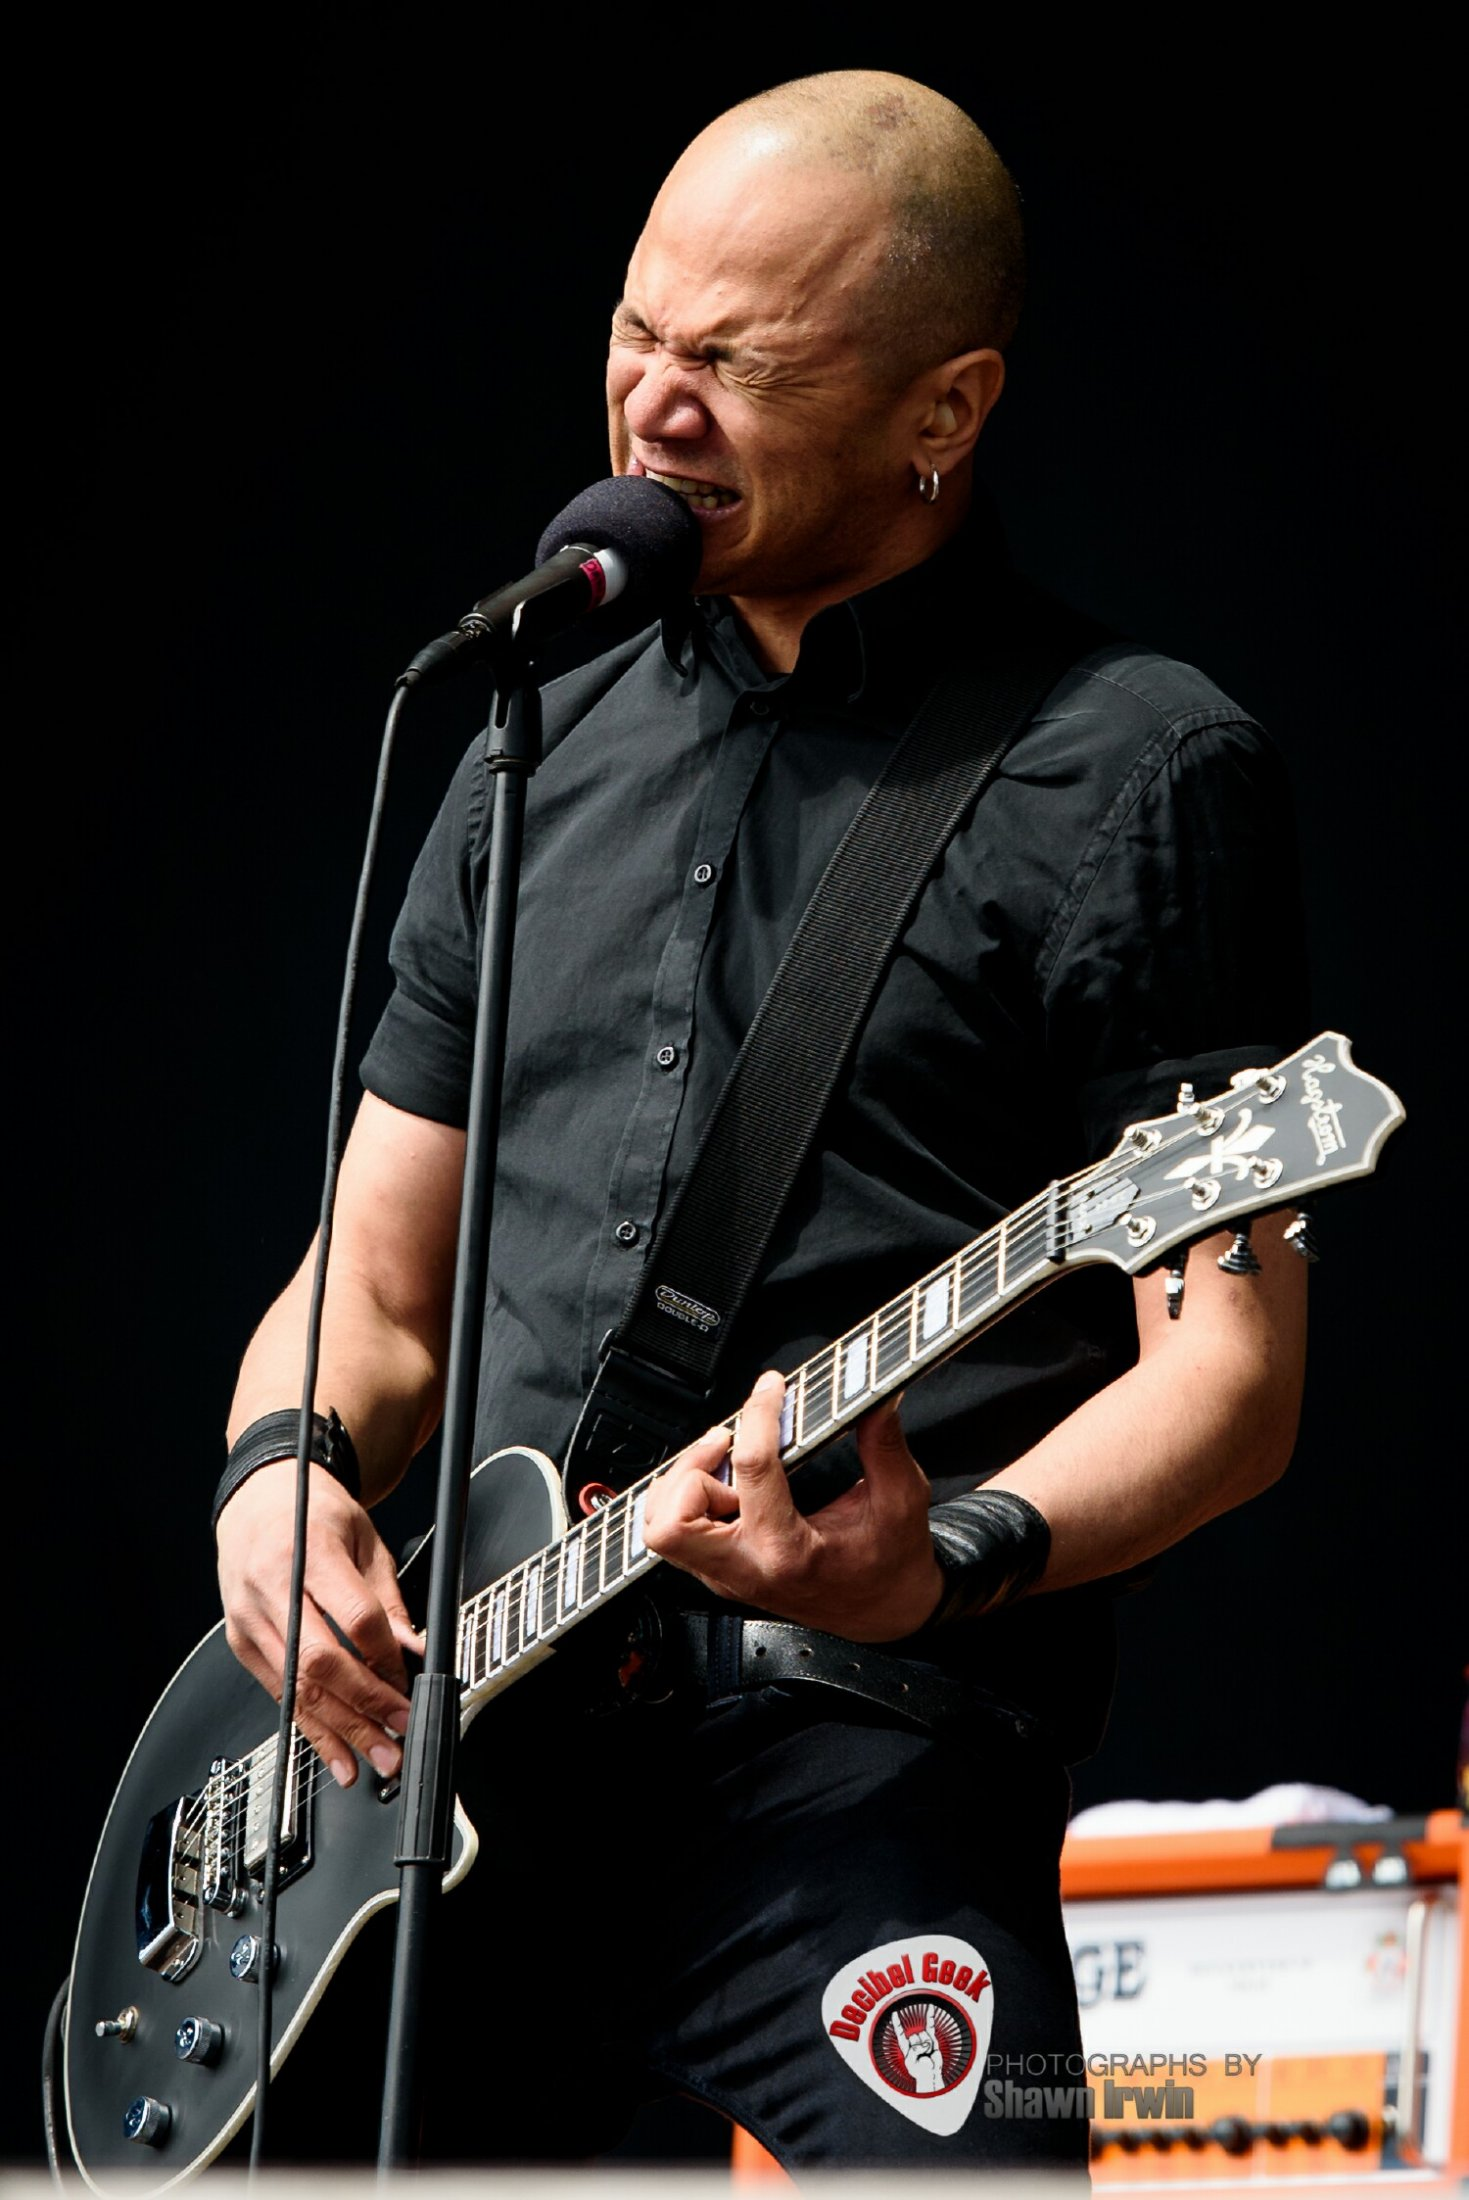 Danko Jones #14-SRF 2019-Shawn Irwin